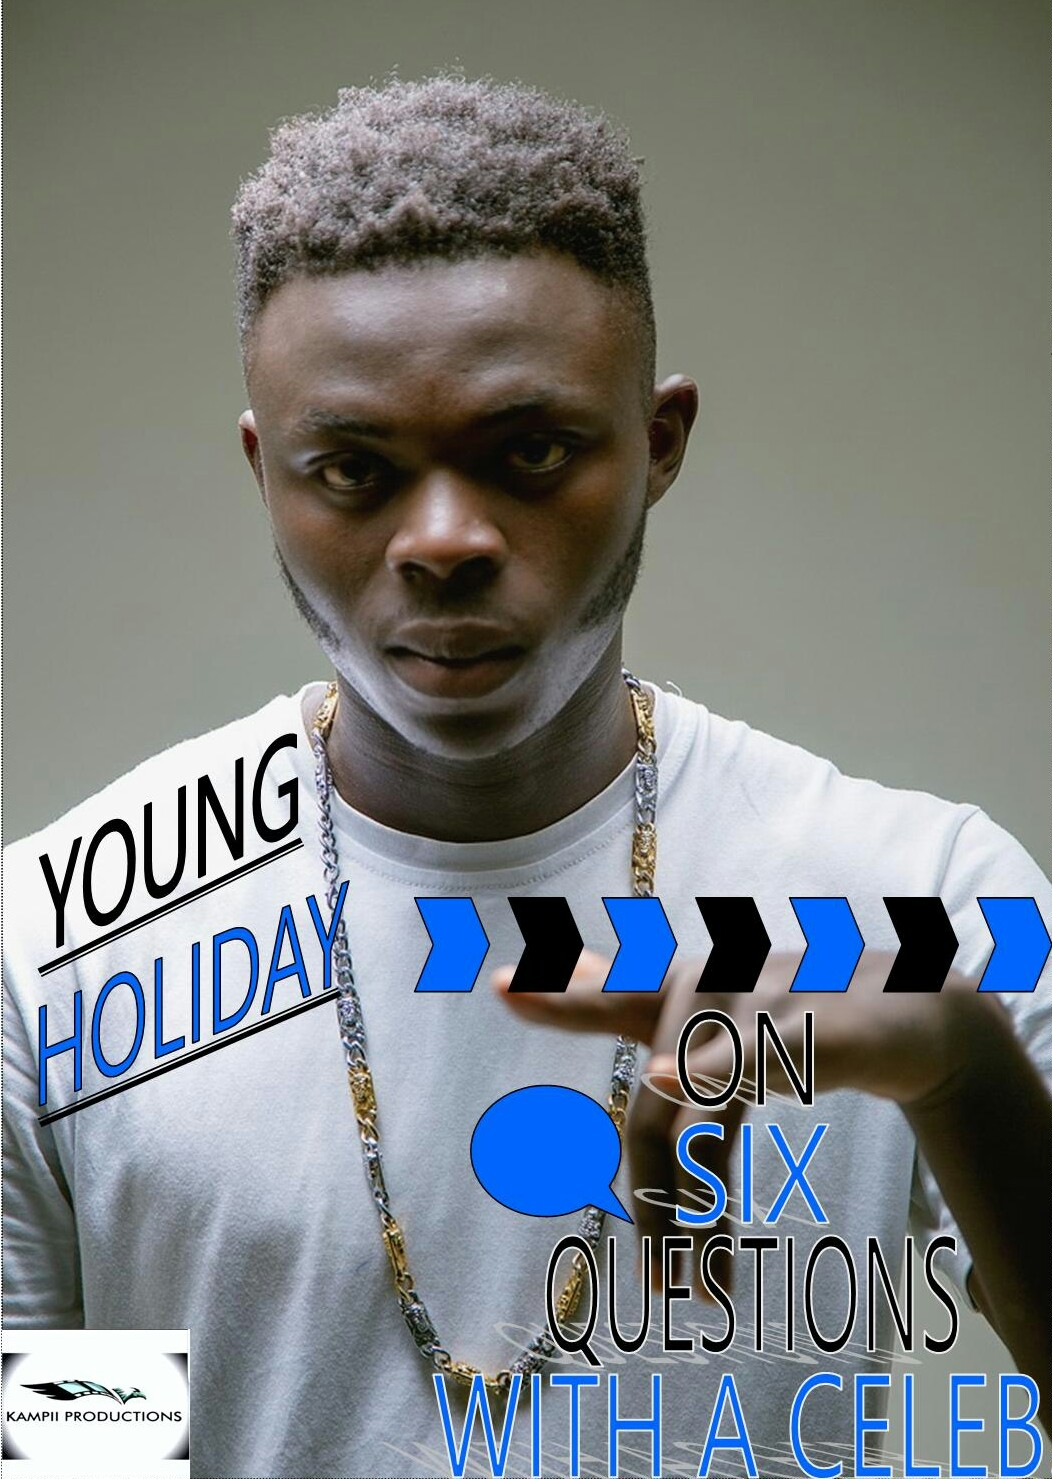 """ I can boastfully say kamer has the best rappers and messengers in Africa"" Young Holiday."